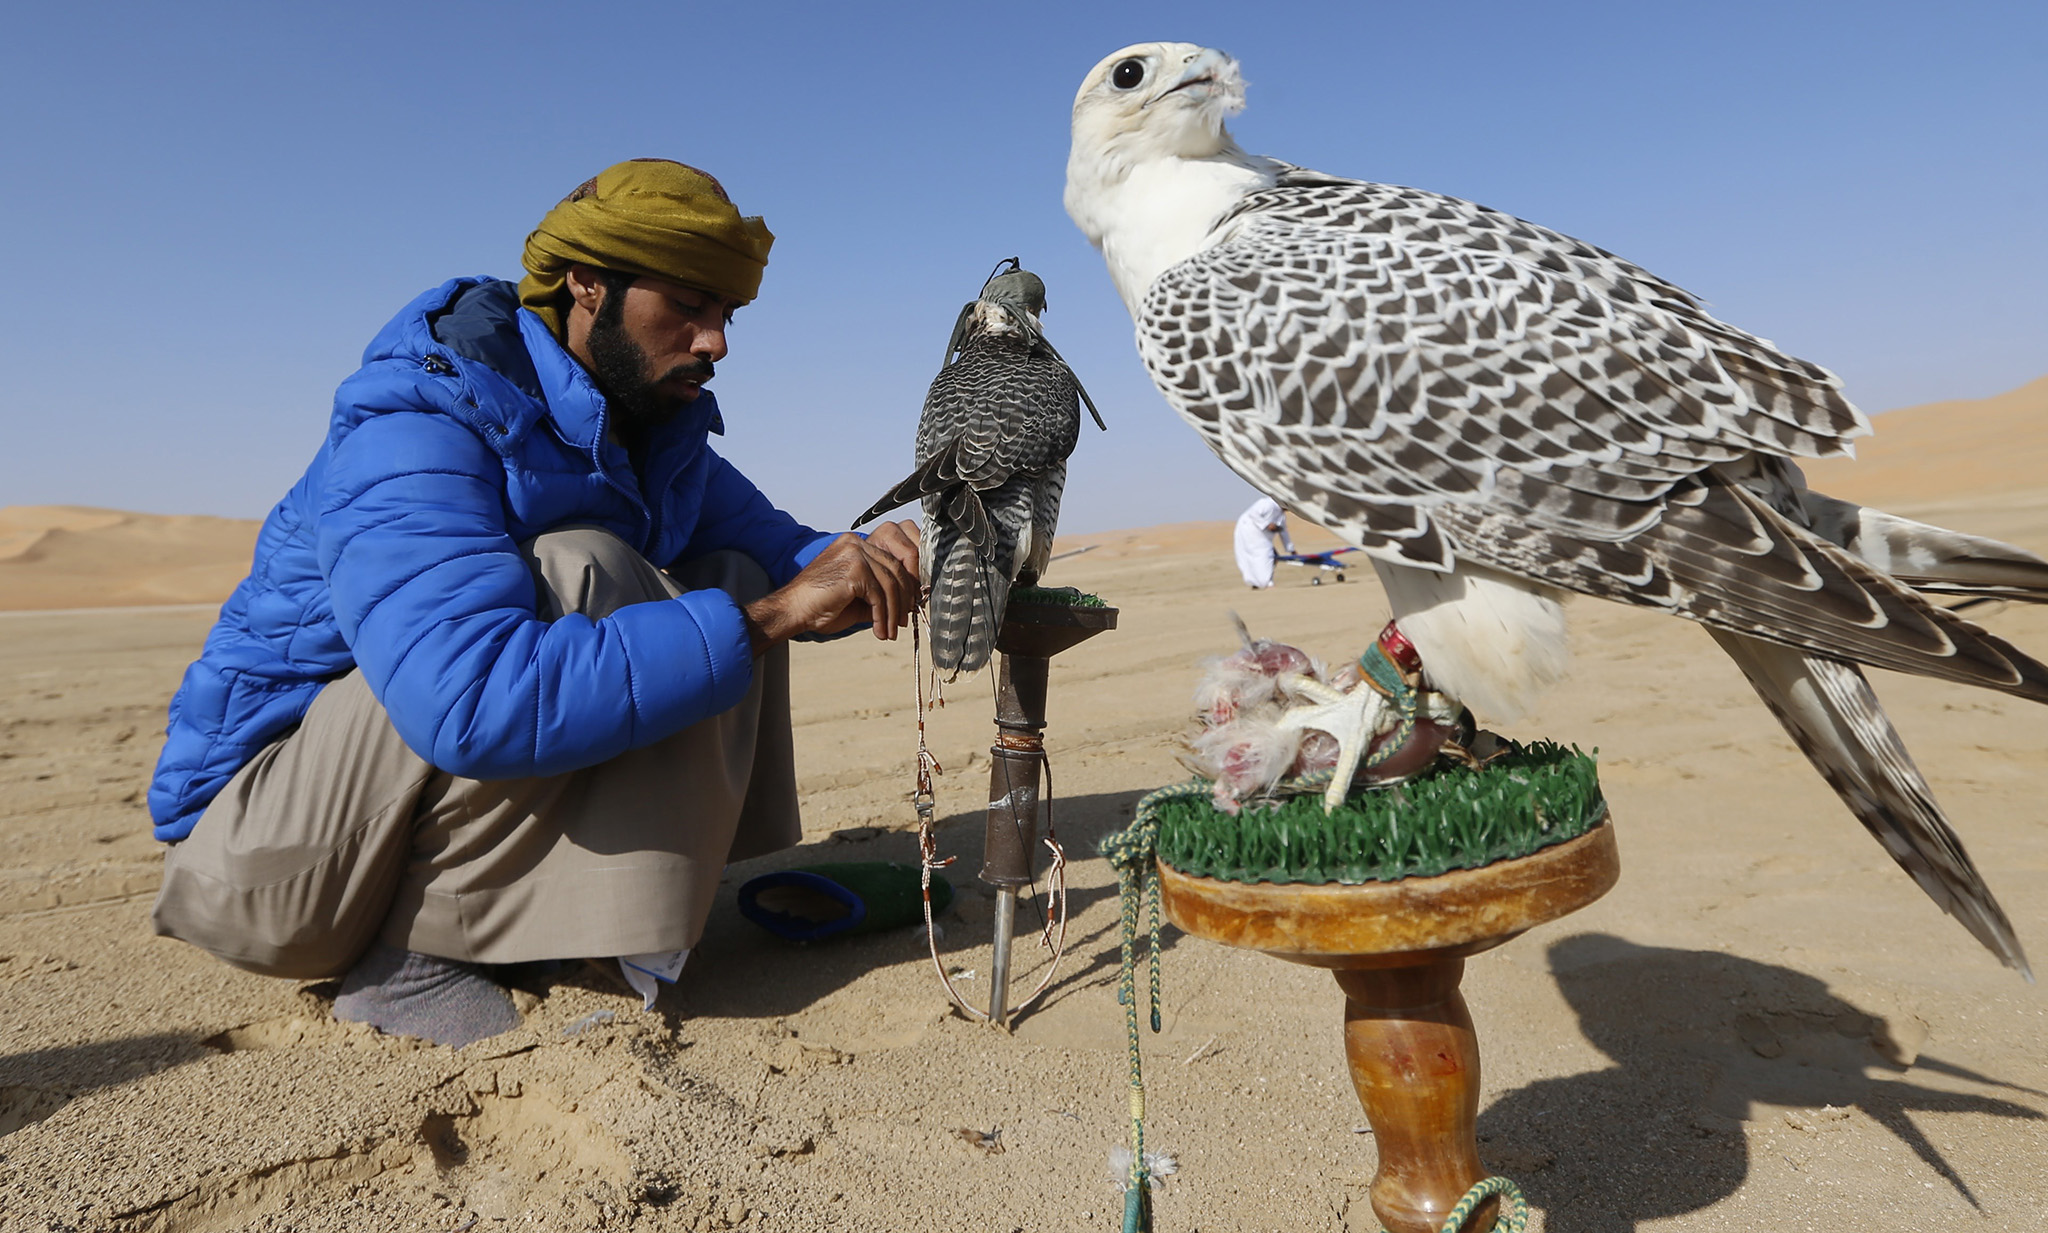 An Emirati falconer prepares to train his birds during the Liwa 2016 Moreeb Dune Festival in the Liwa desert, some 250 kilometres southwest of Abu Dhabi.